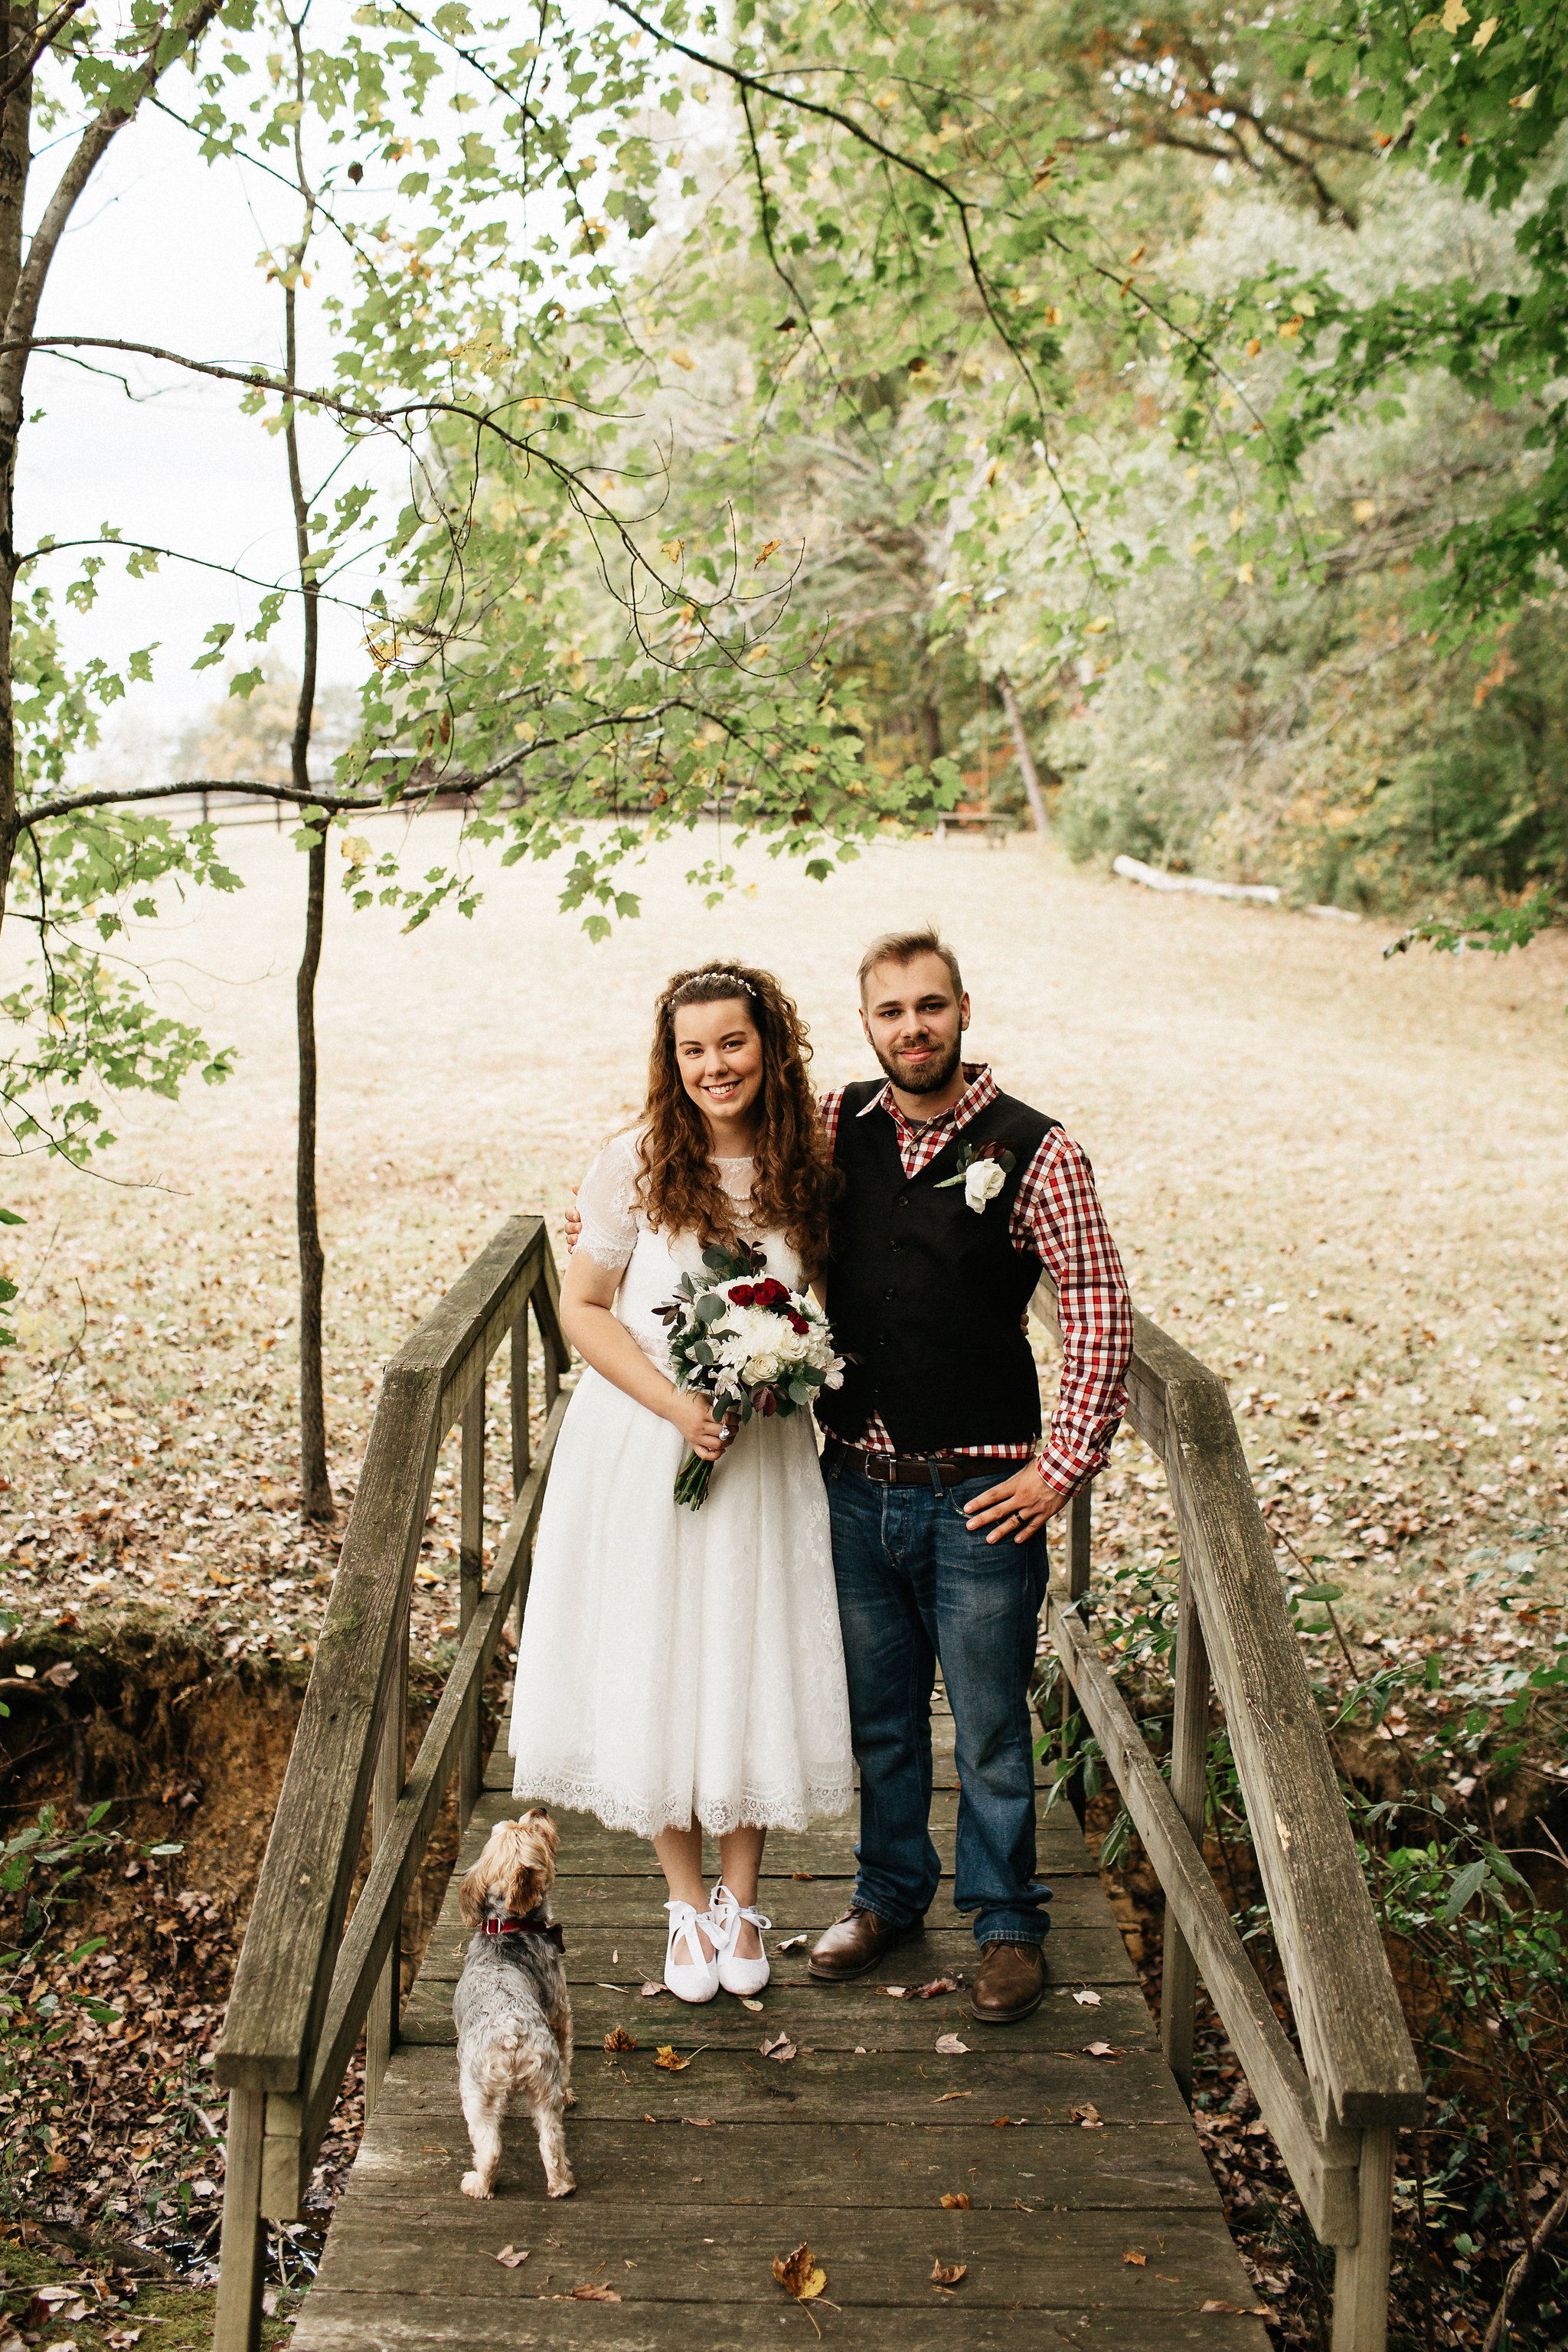 Caitlin&CodyMarried2017-11-03at19.19.39PM121.jpg